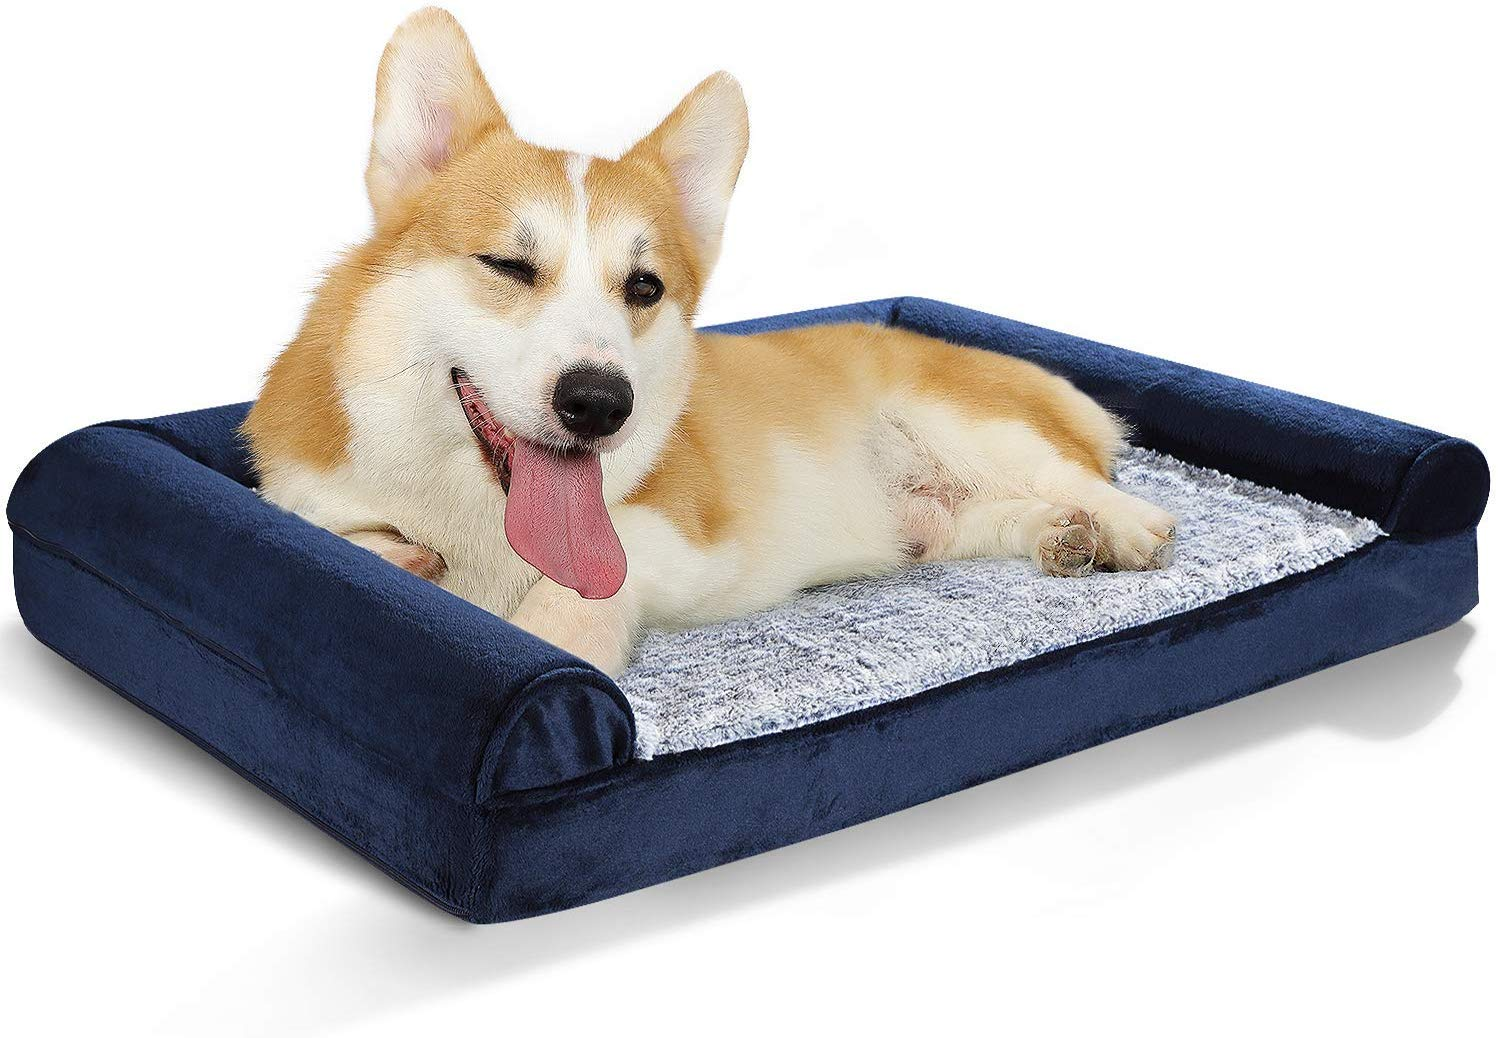 Rabbitgoo Dog Bed Orthopedic Pet Bed, Washable Dog Couch Sofa Bed with Removable Cover & Waterproof Liner, Anti-Slip Soft Foam Pet Bed for Medium Dogs Cats Home Sleep, Joint-Relief Bolsters (36x27in) by Rabbitgoo